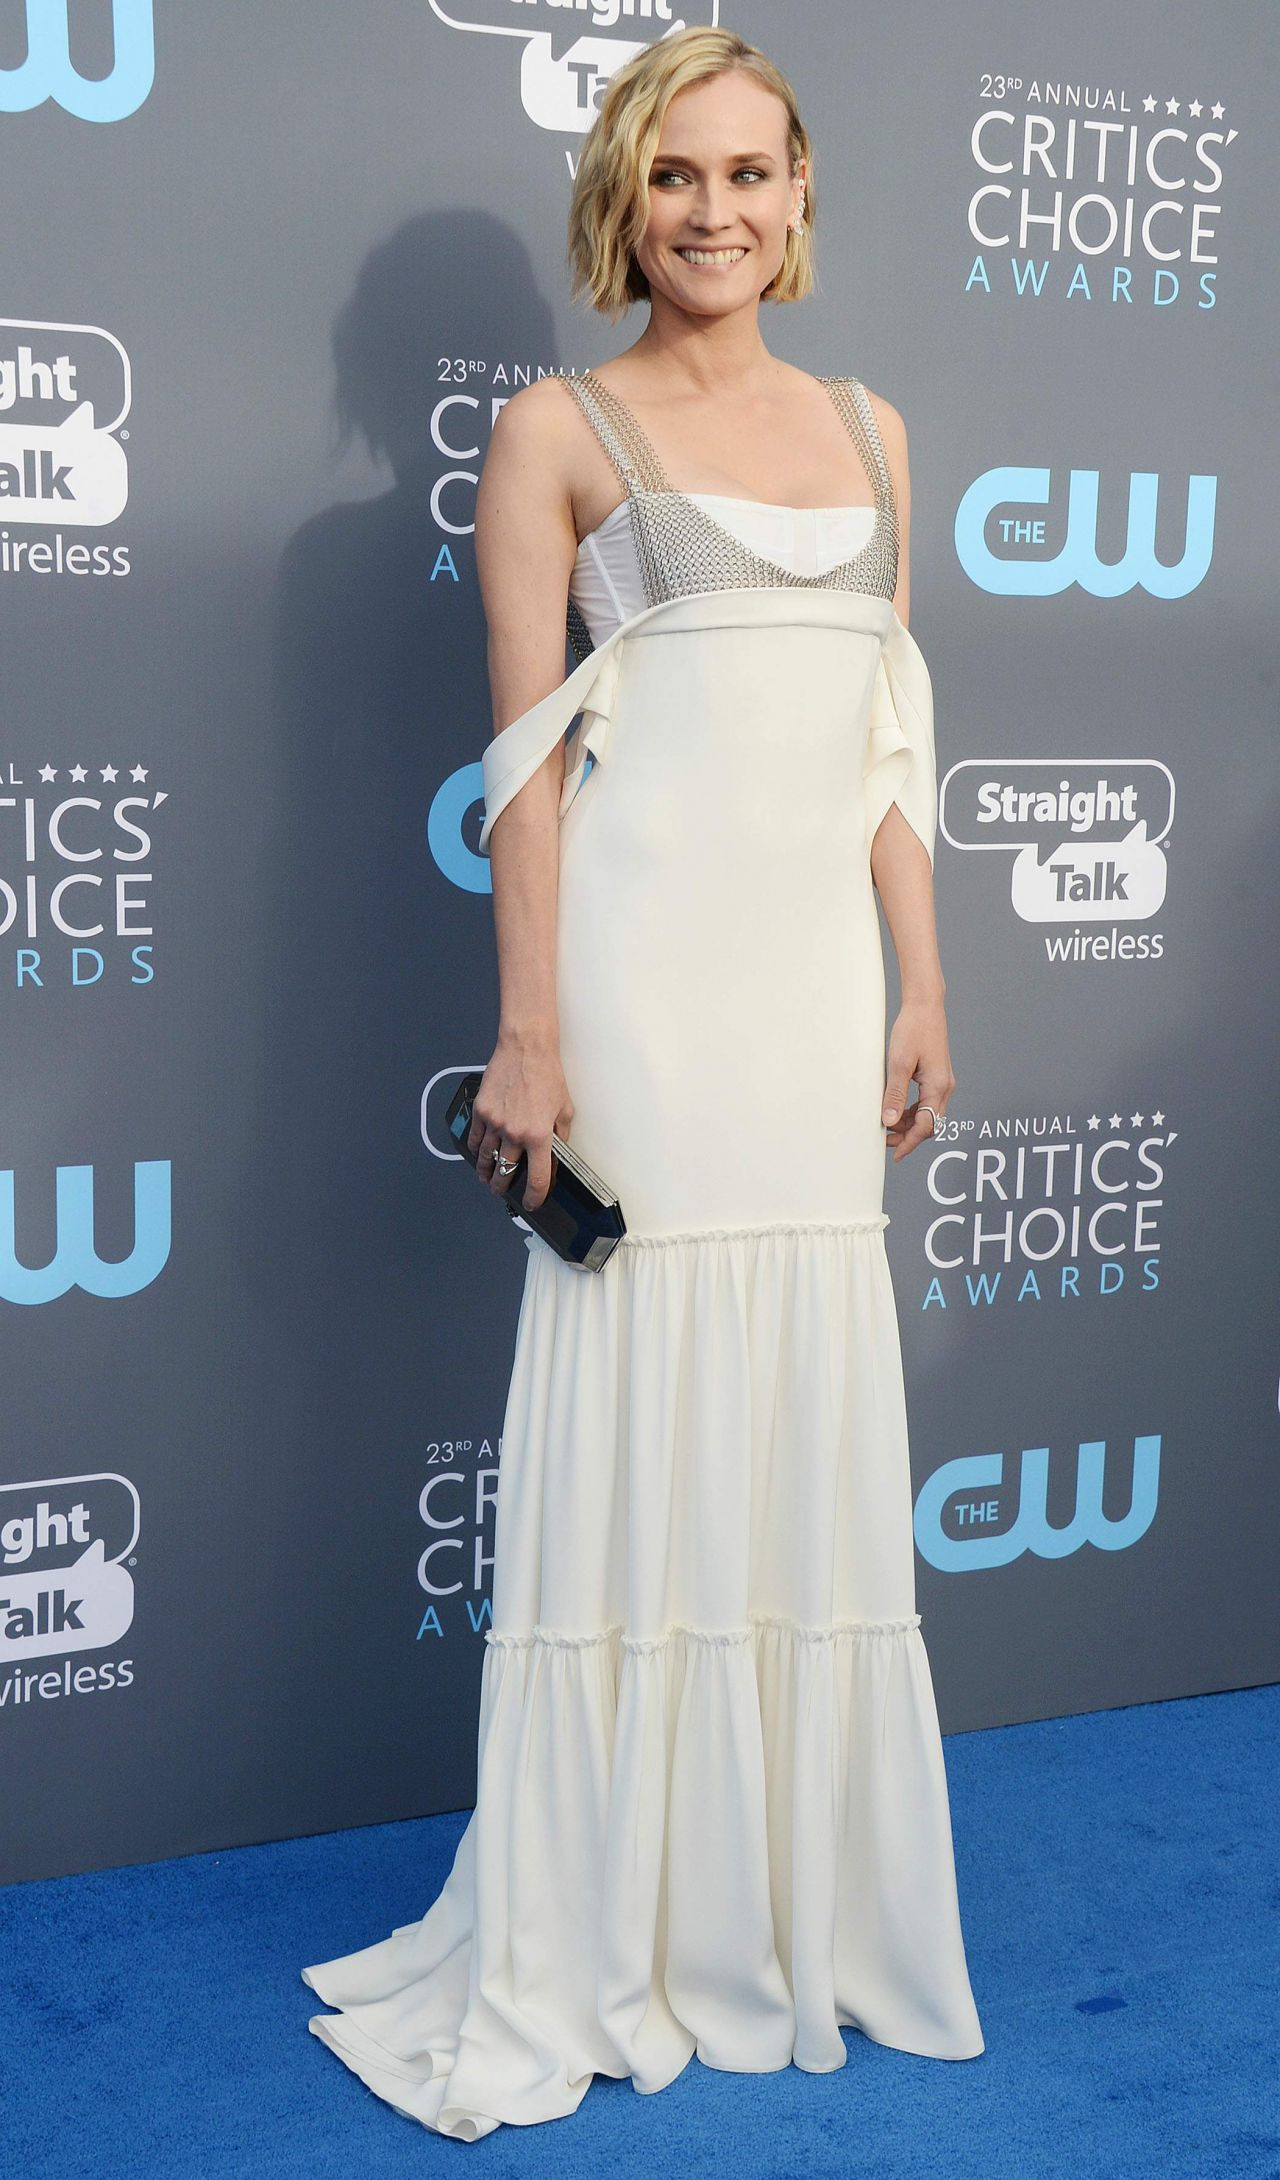 http://celebmafia.com/wp-content/uploads/2018/01/diane-kruger-2018-critics-choice-awards-3.jpg